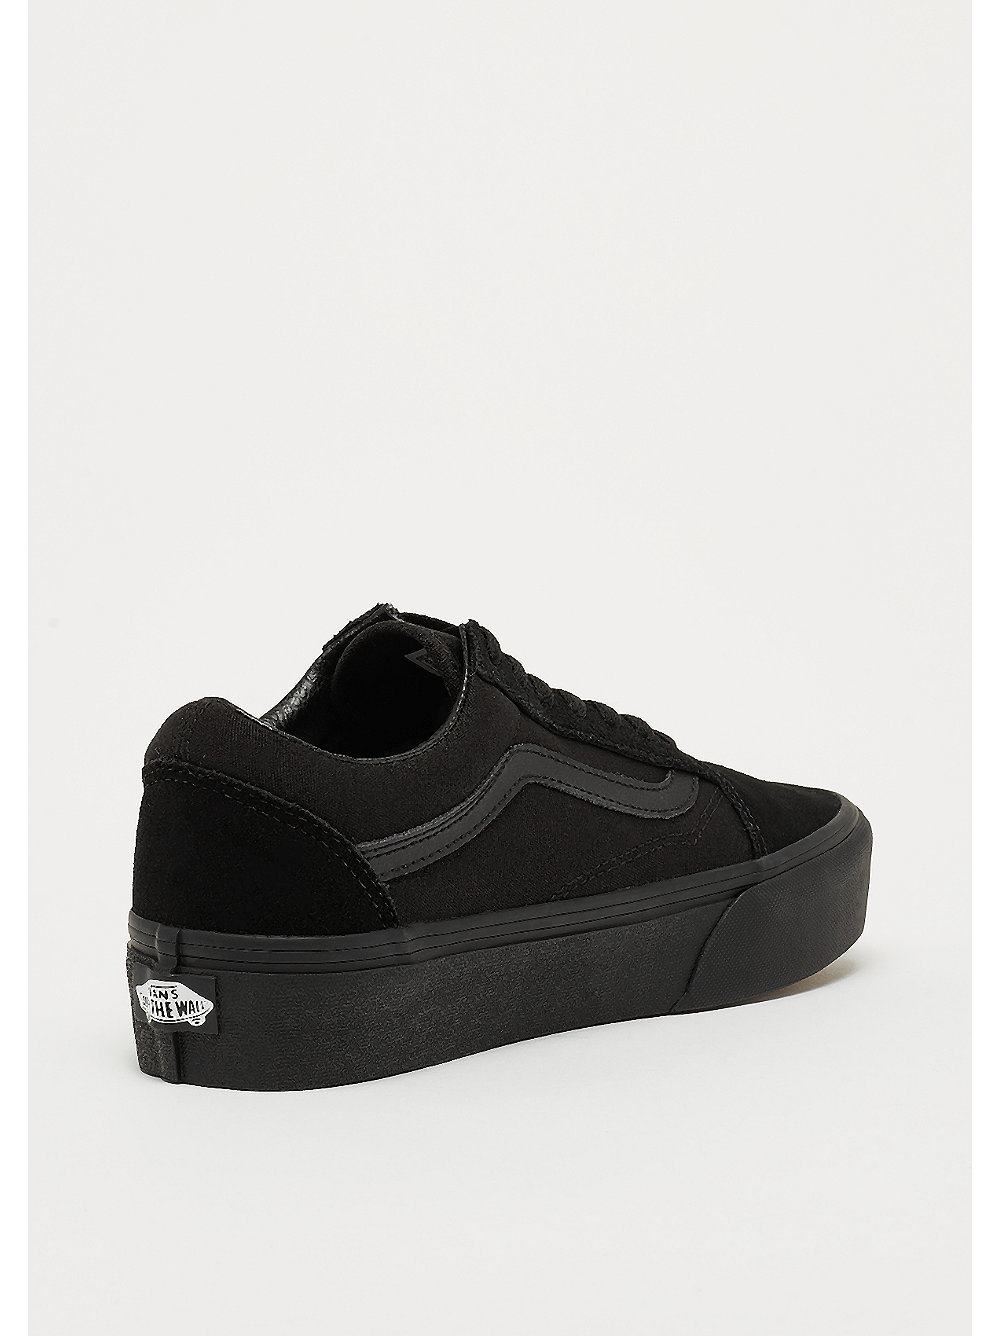 vans ua old skool platform black black bei snipes bestellen. Black Bedroom Furniture Sets. Home Design Ideas